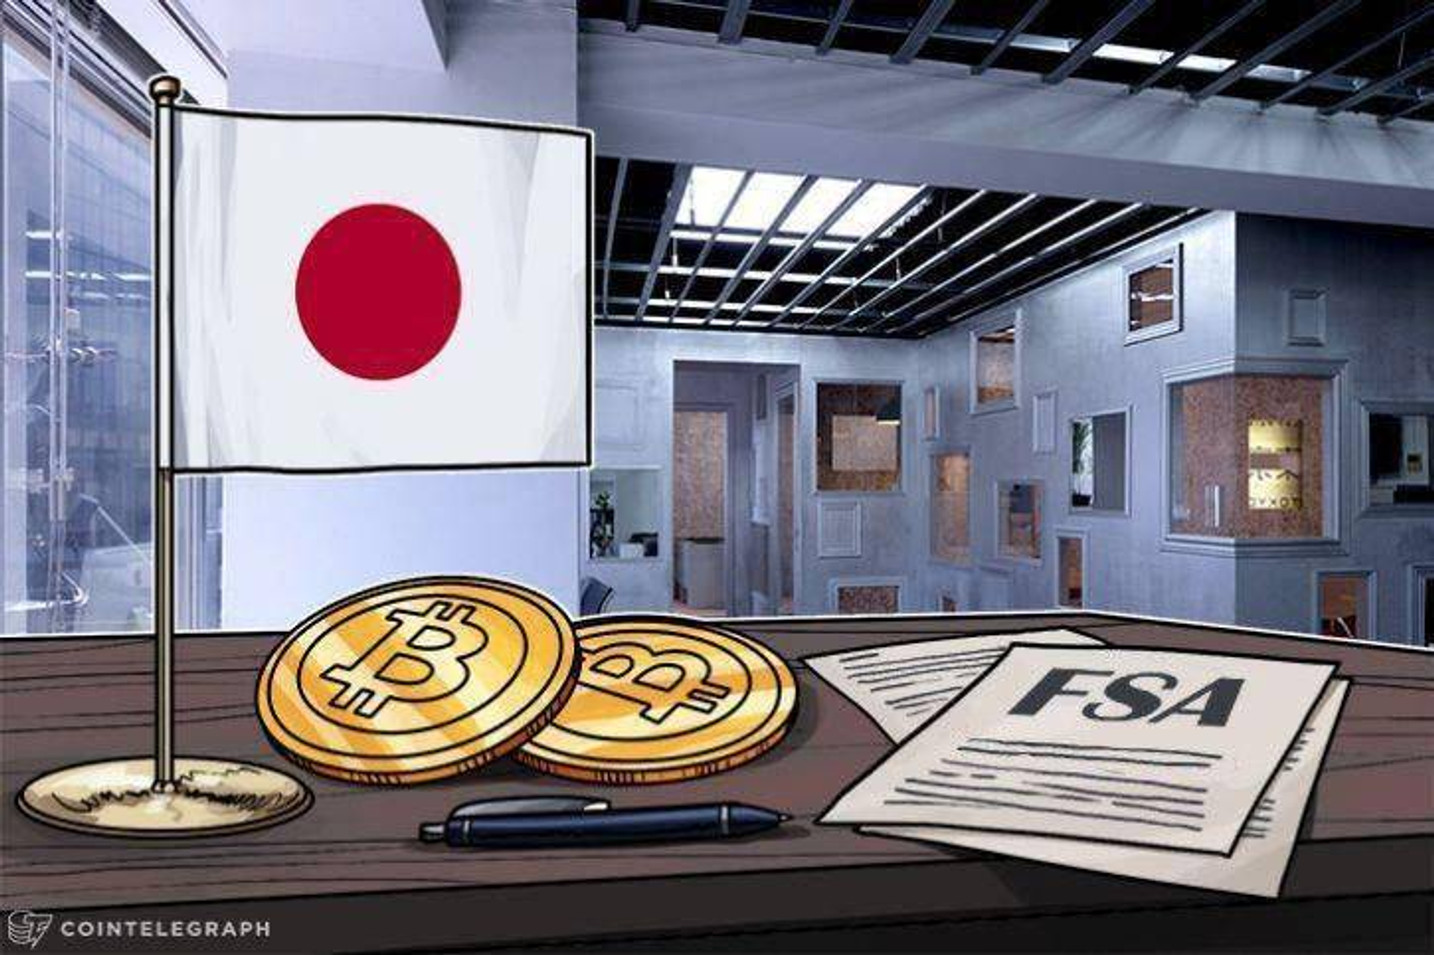 El intercambio de criptomonedas Japones Everybody's Bitcoin recibe una cita de los reguladores financieros